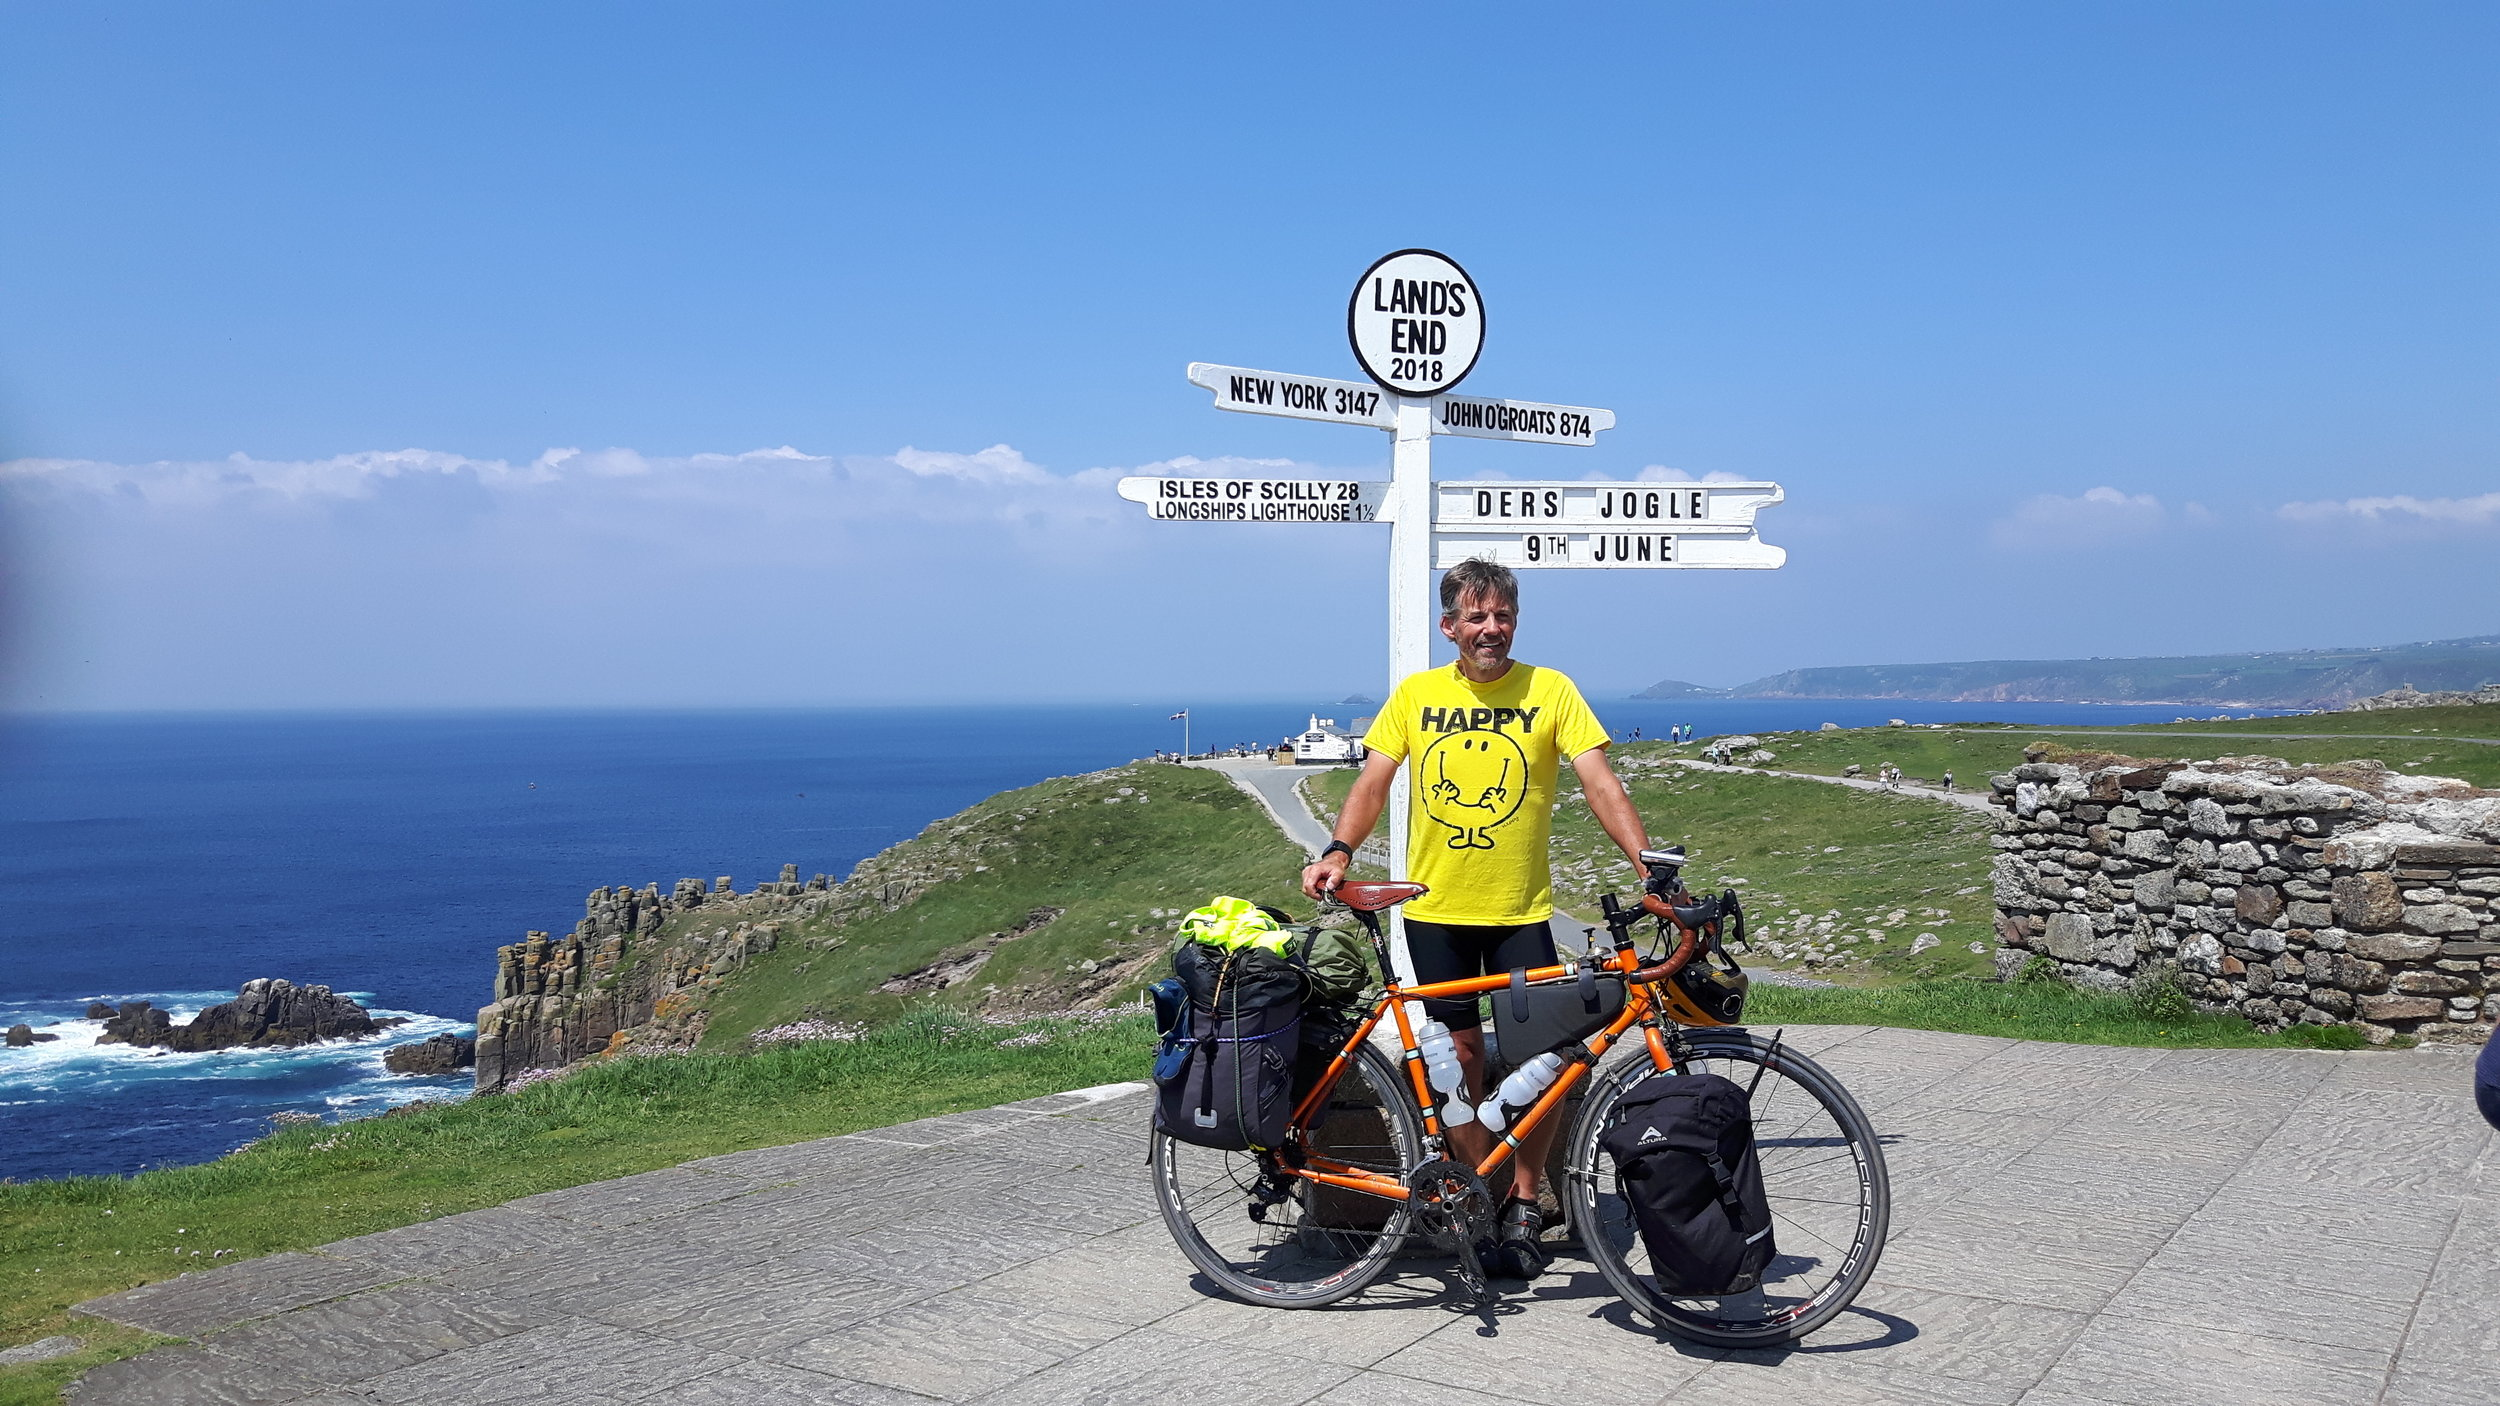 An epic achievement. Journey's end for one of our guests, completing a solo ride from John o'Groats.   Photograph with kind permission of Derwen Love